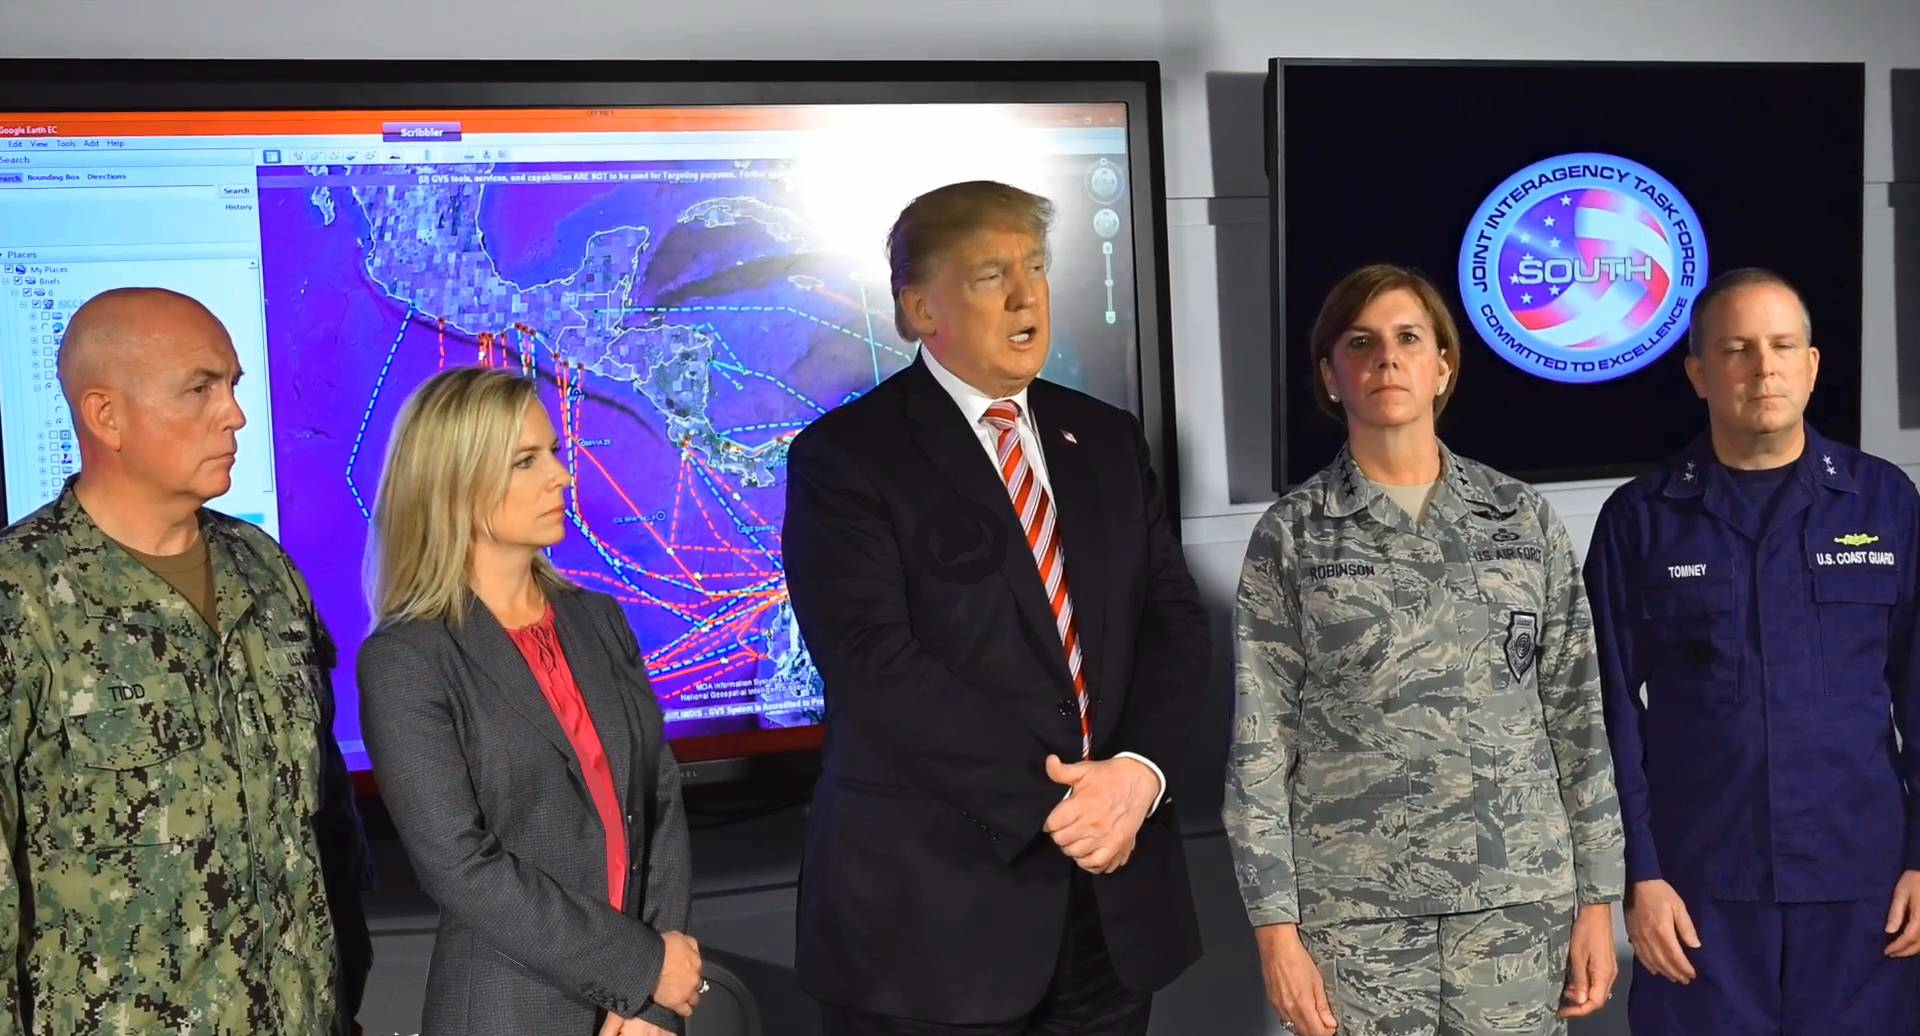 An image of President Donald Trump and Homeland Security Secretary Kirstjen Nielsen tour the Joint Interagency Task Force South, a federal anti-smuggling and anti-drug trafficking agency, at the Naval Air Station Key West in Key West, Florida on April 19, 2018